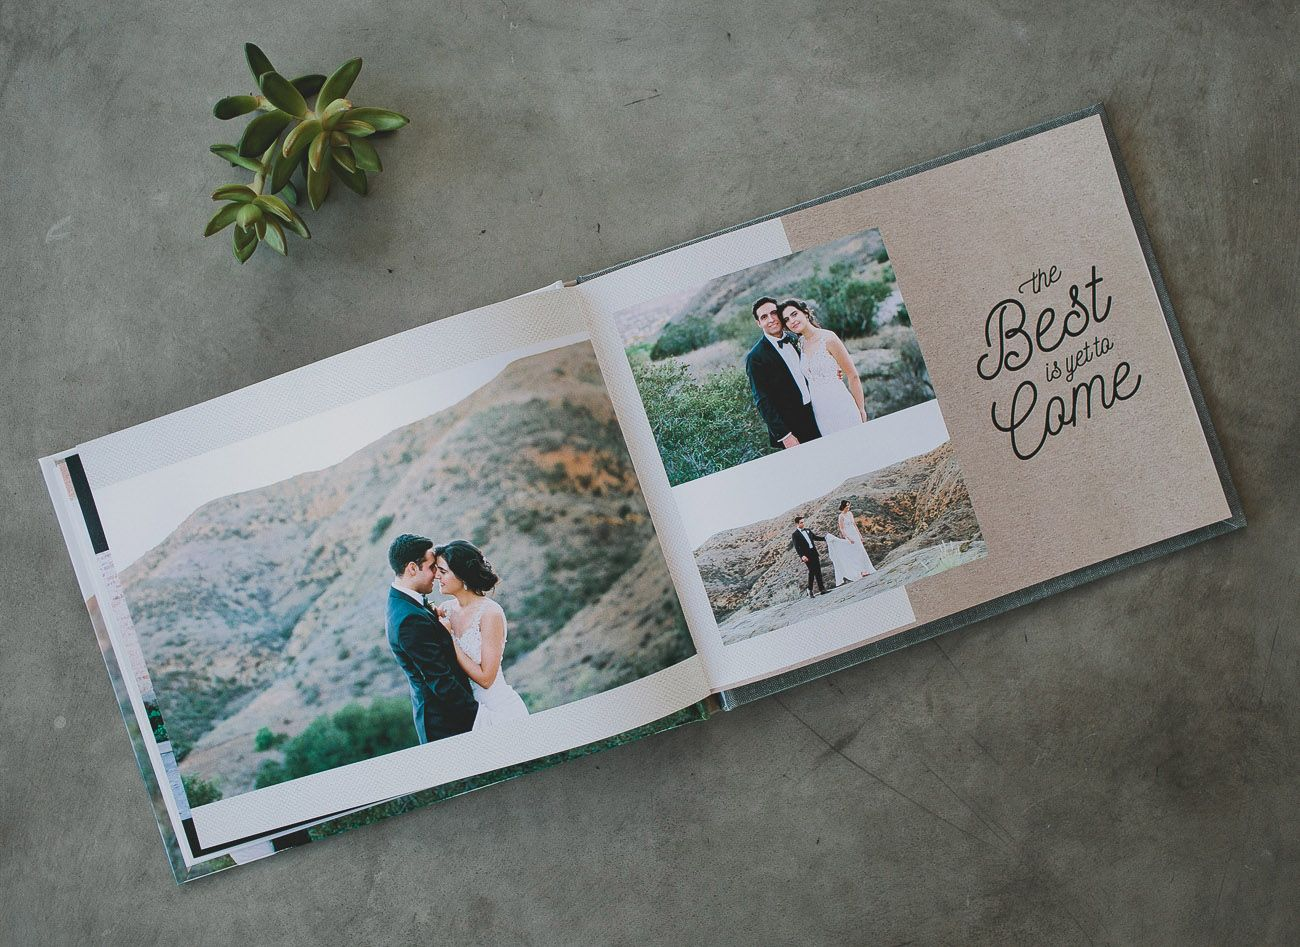 Personalized Photo Book with Mixbook